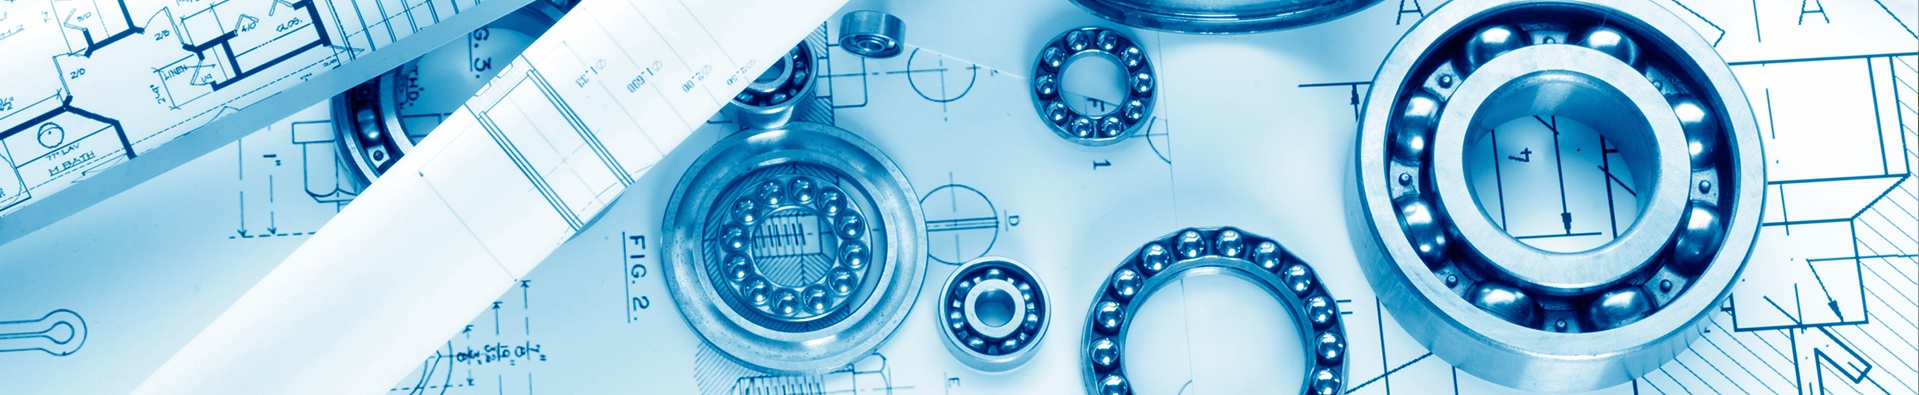 industrial-machinery-and-components.jpg